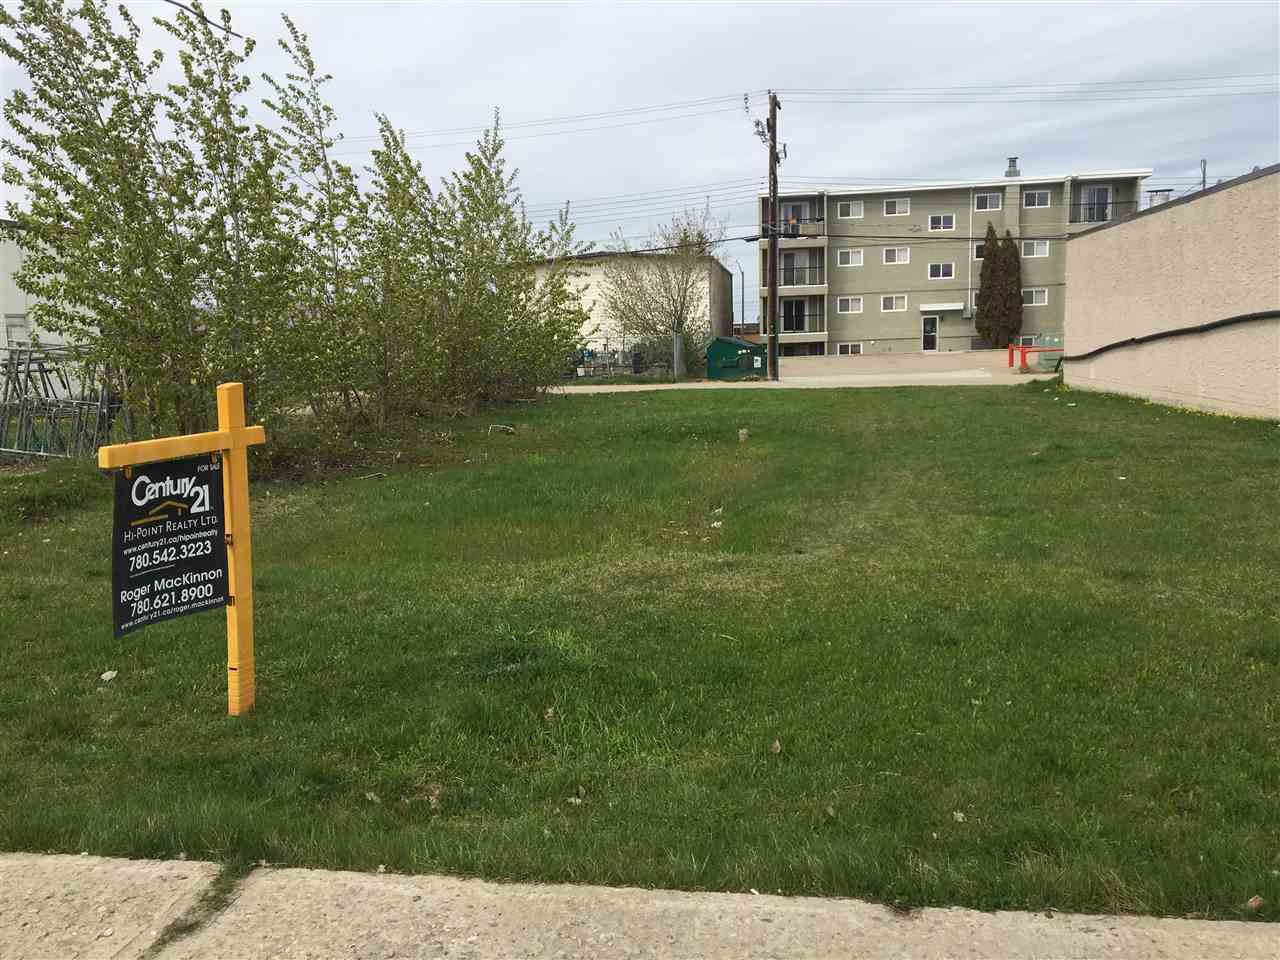 Main Photo: 5228 52 Avenue: Drayton Valley Land Commercial for sale : MLS®# E4157489